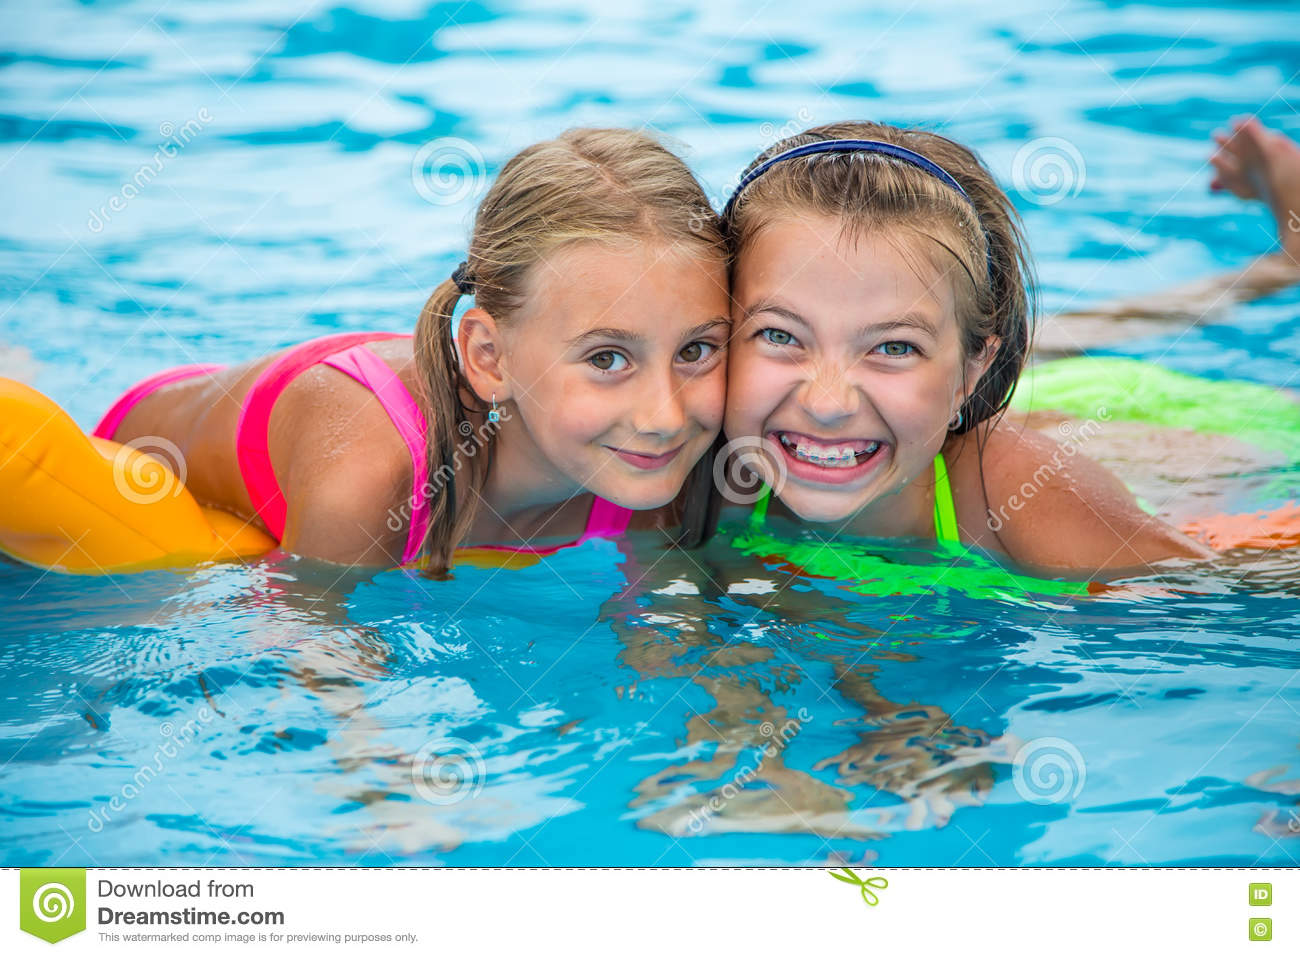 Two Happy Girls Playing In The Pool On A Sunny Day Cute Little Girls Enjoying Holiday Vacation